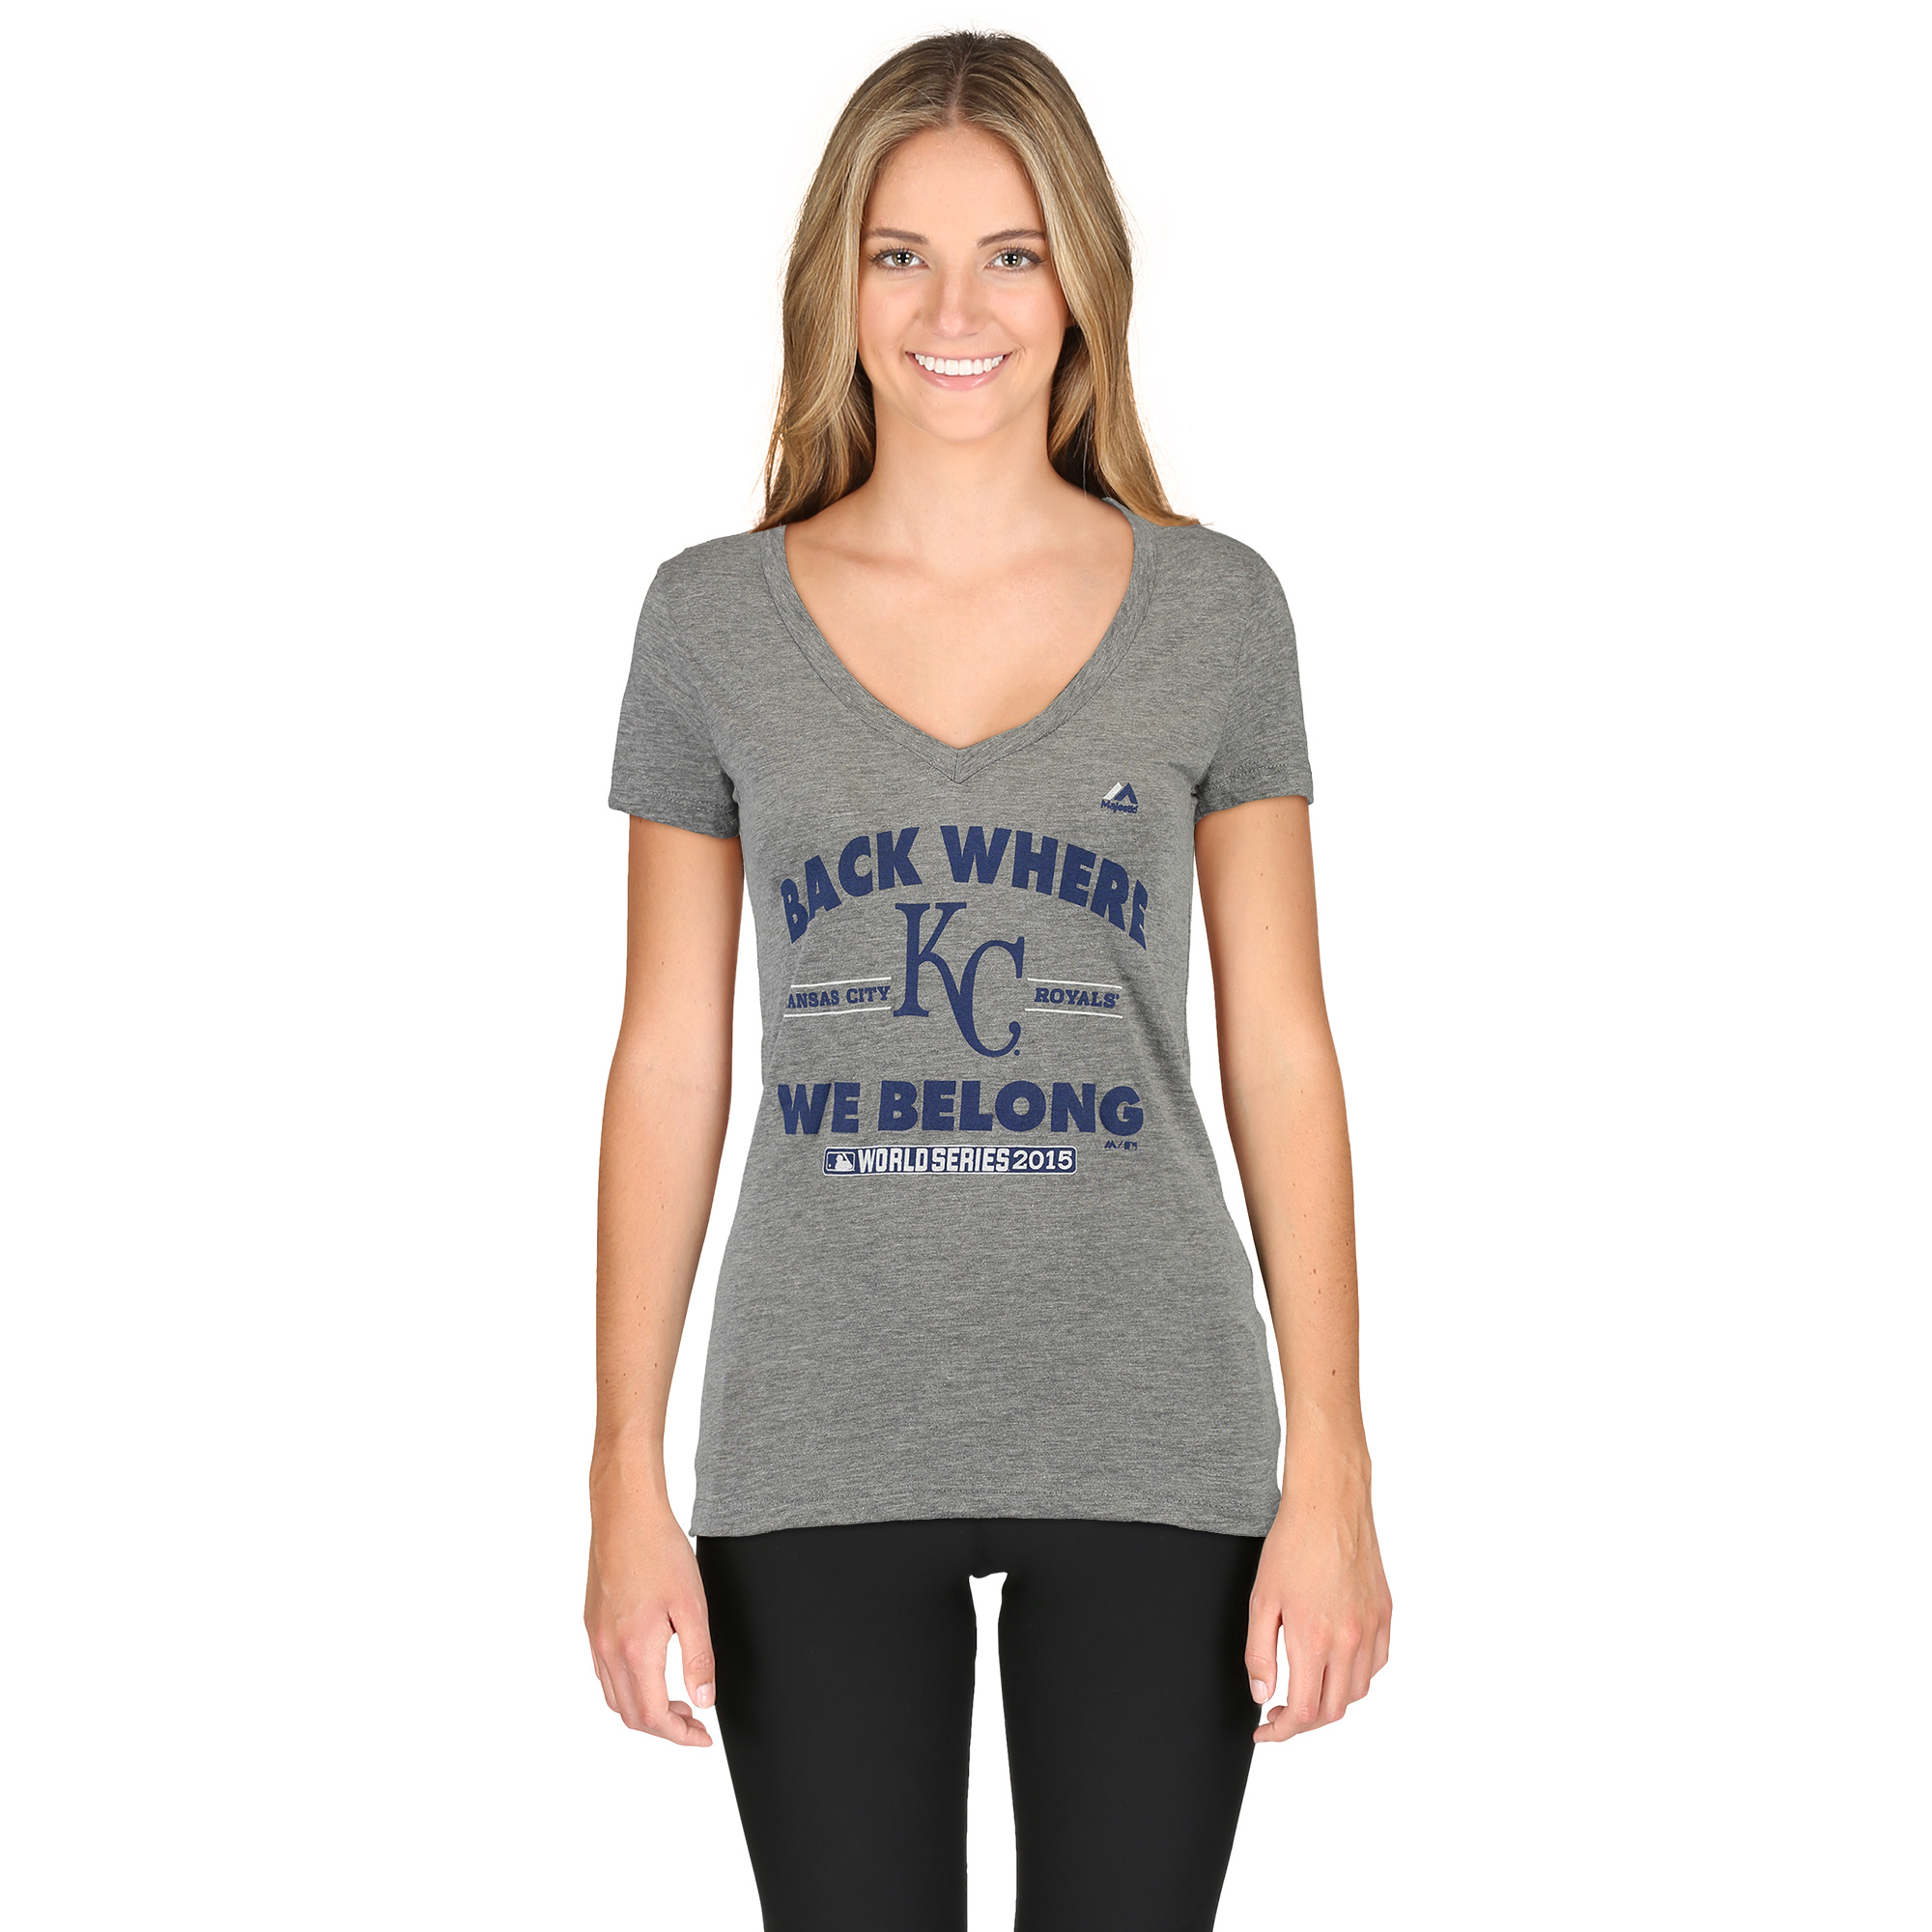 Kansas City Royals Majestic Women's Back Where We Belong T-Shirt - Gray